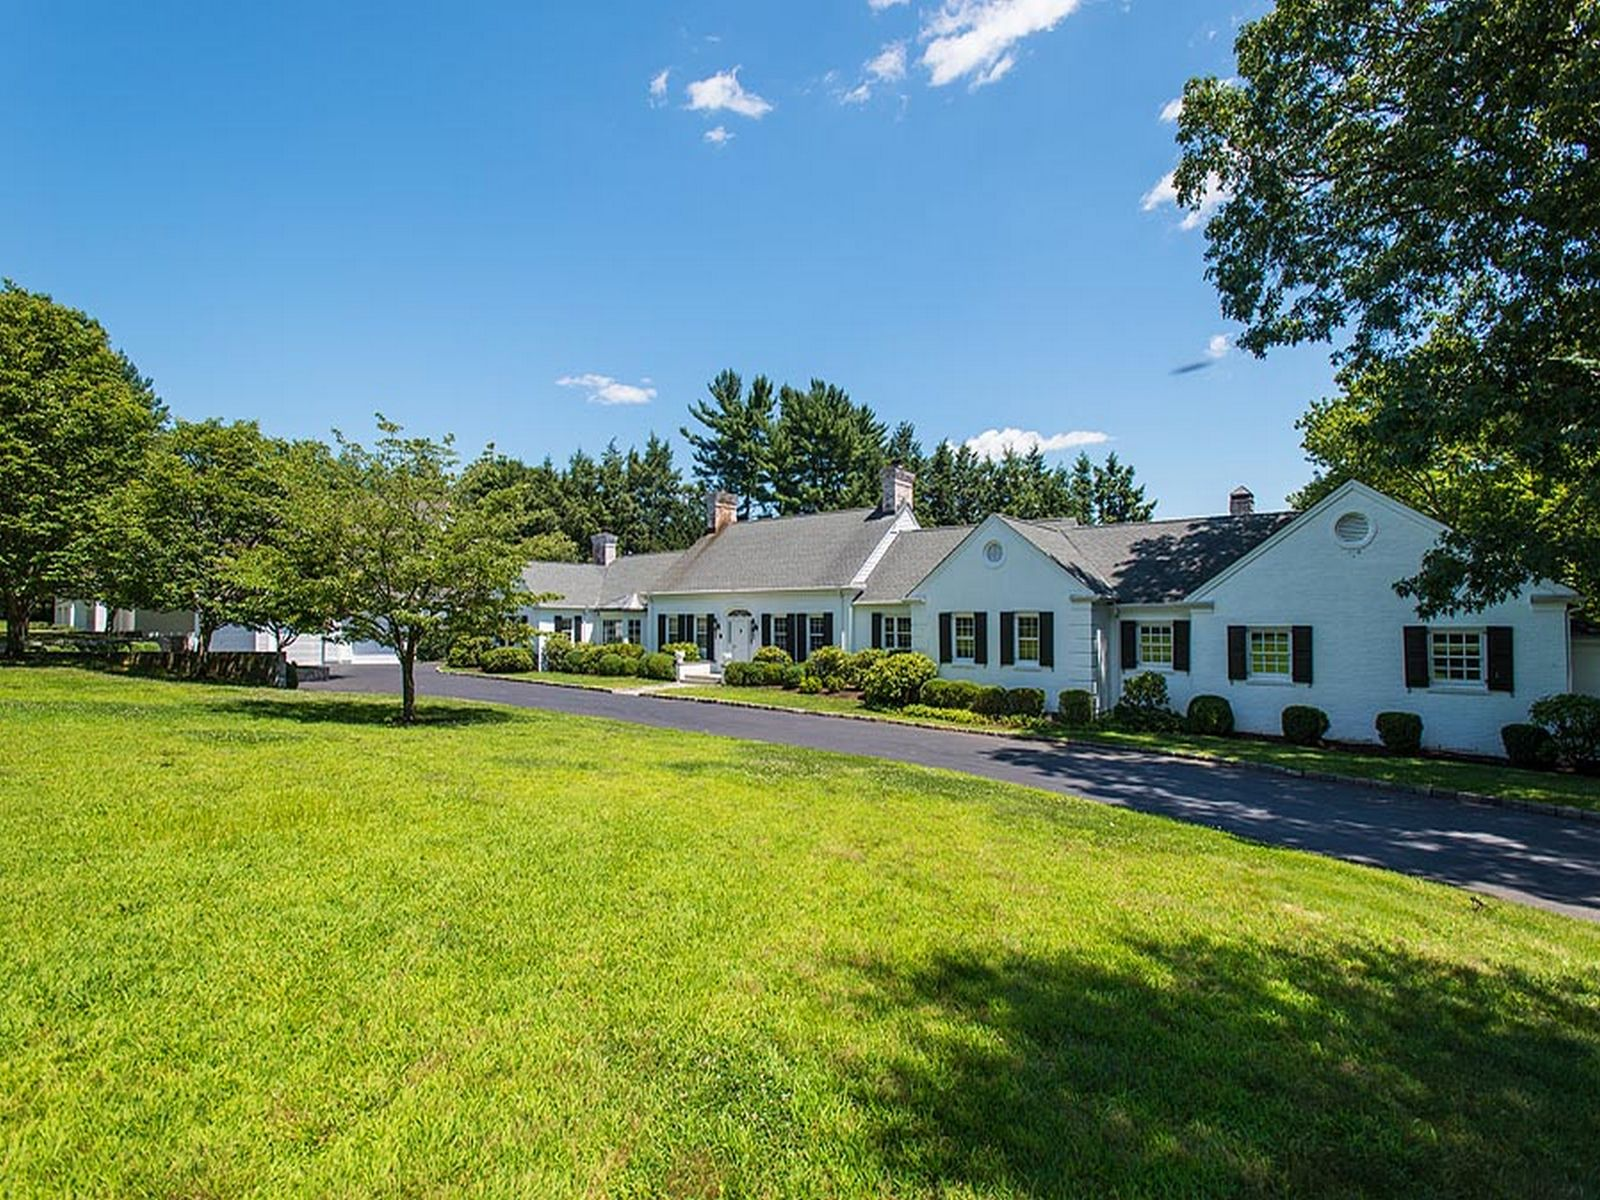 Meadowcroft lane the ultimate address greenwich ct for Luxury homes for sale in greenwich ct